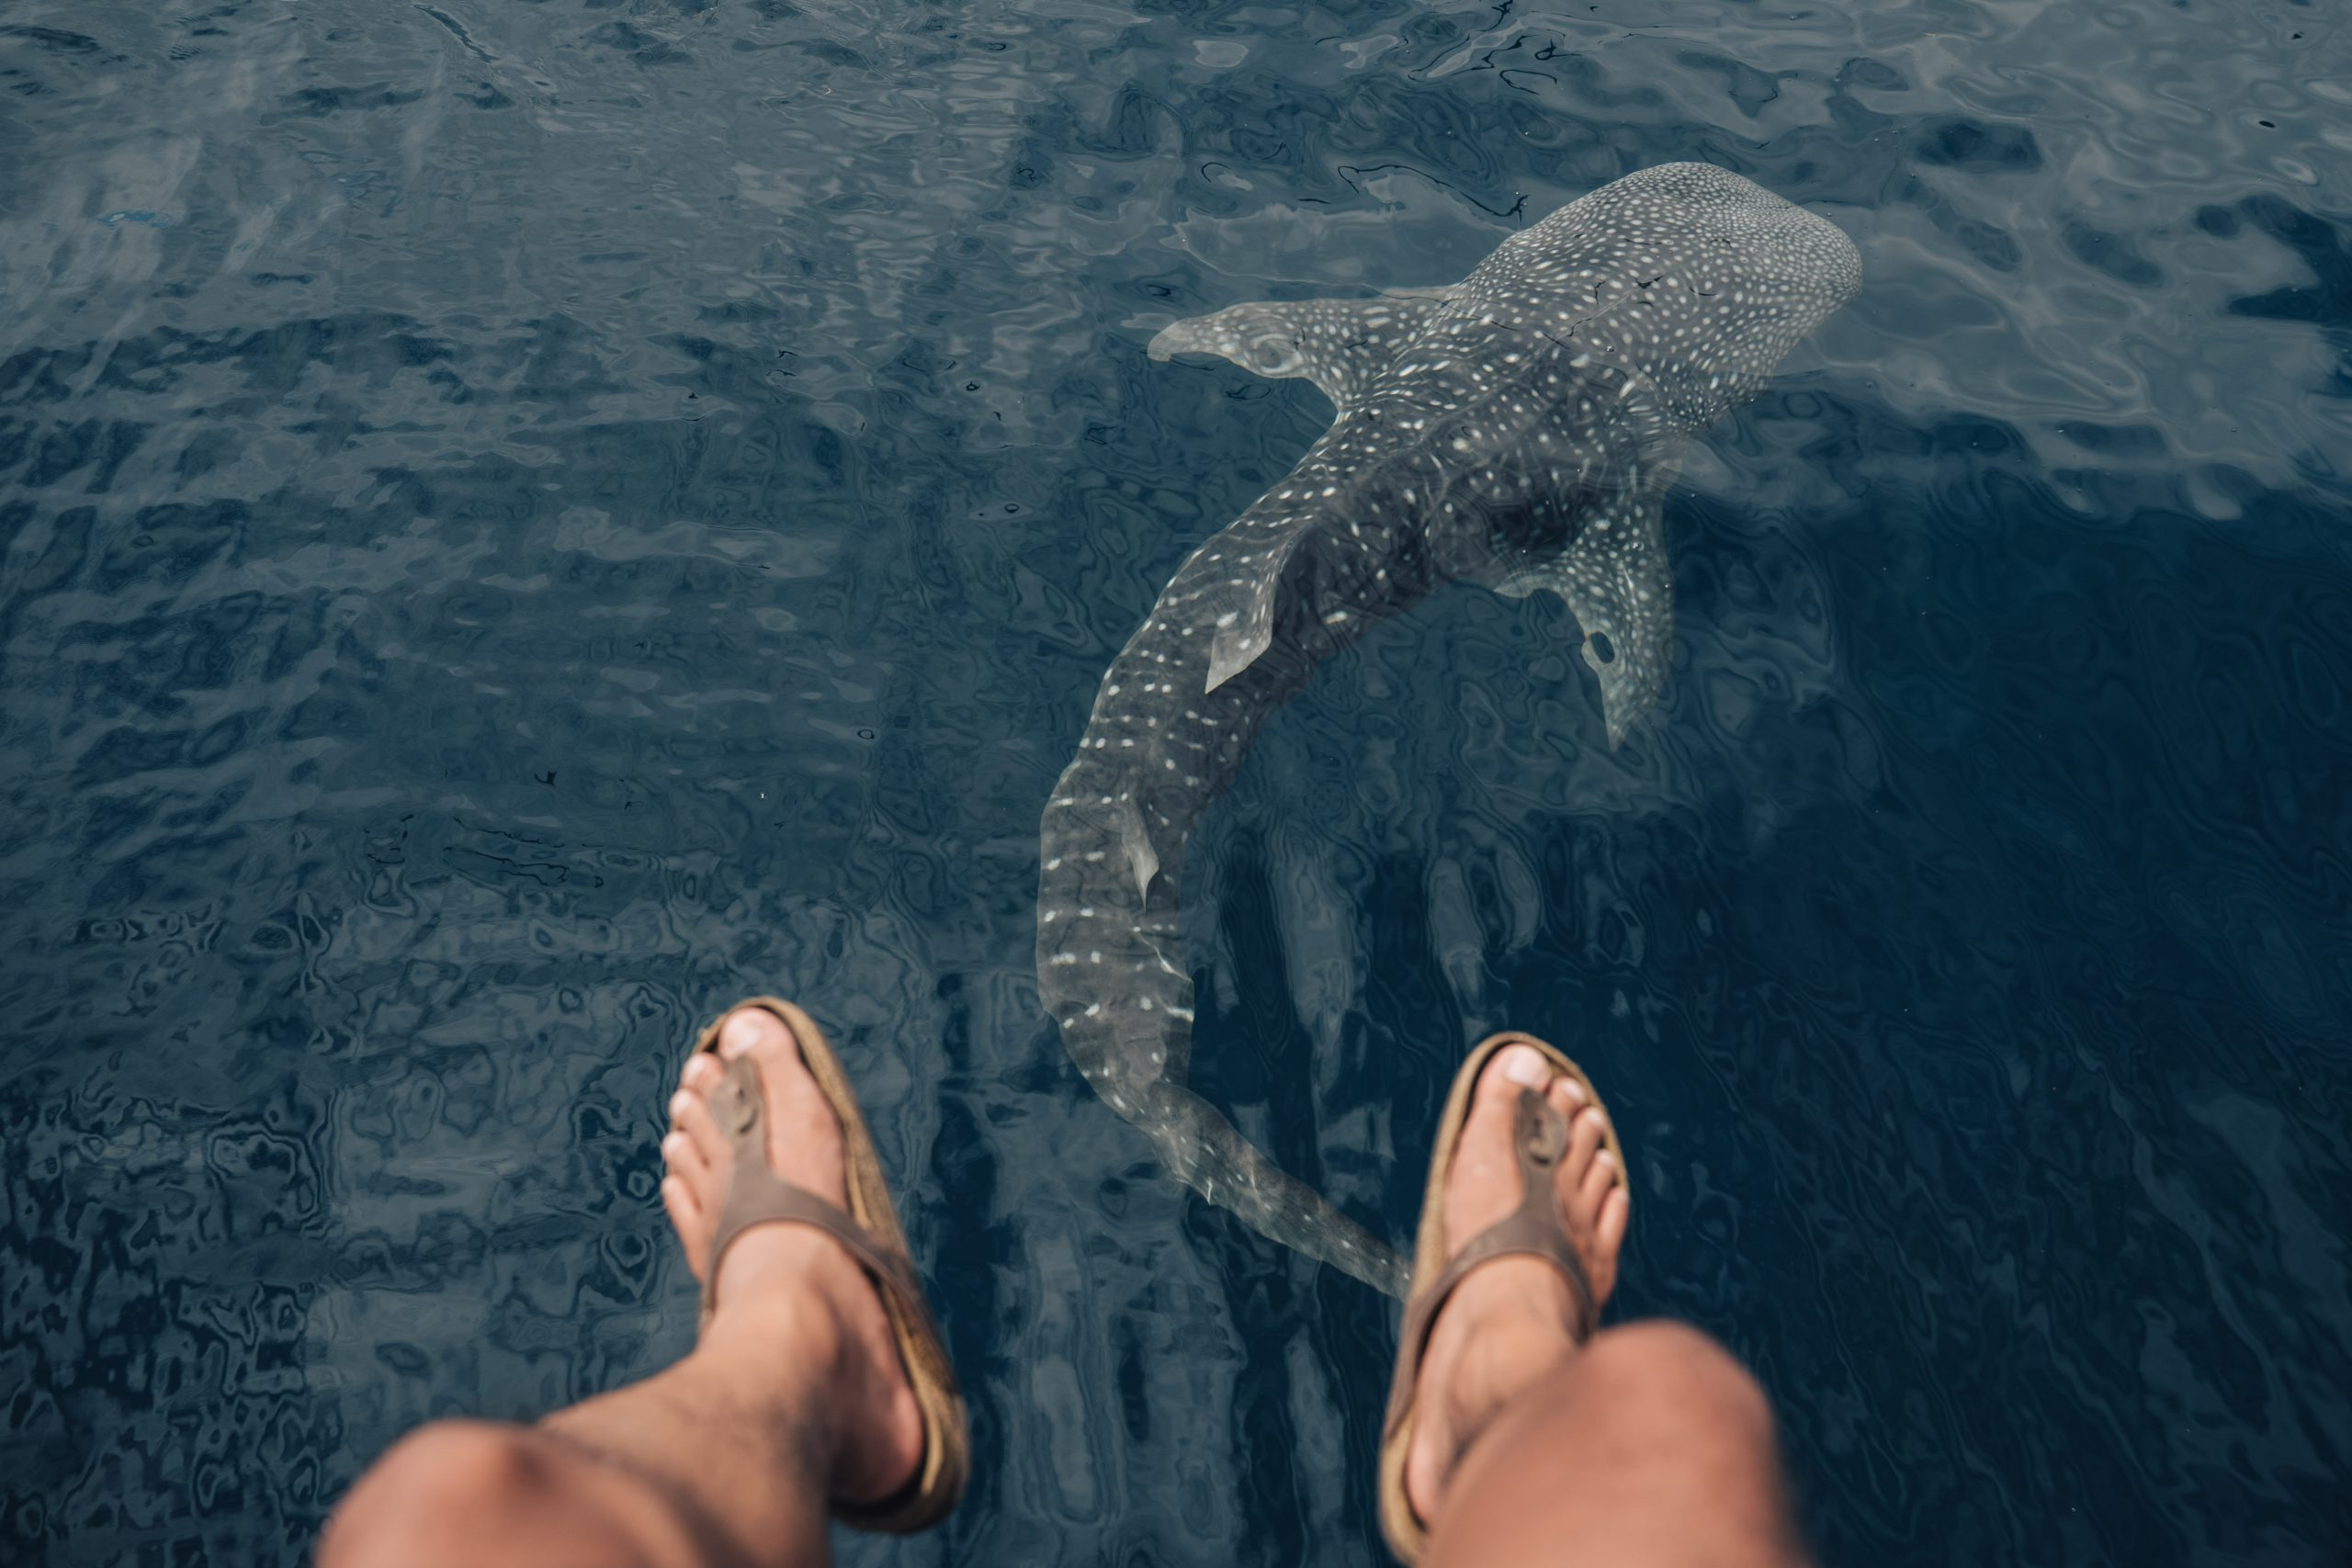 Stunning footage of the world's largest endangered whale shark migrations off the Qatari coast